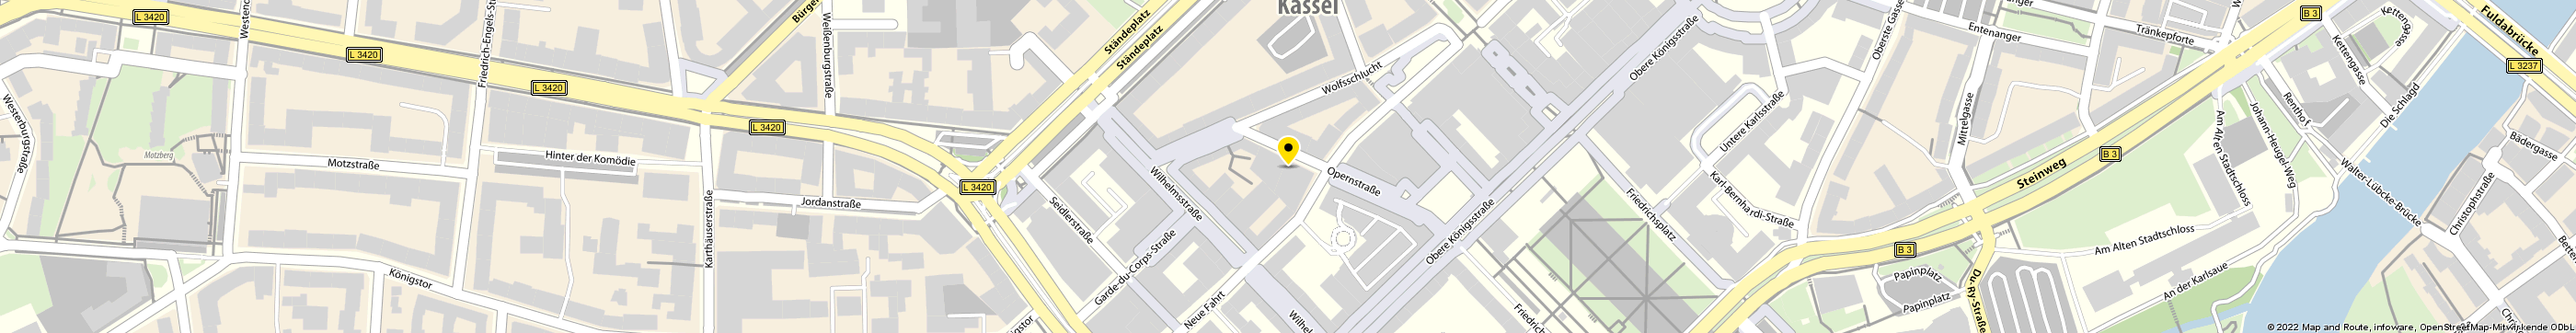 Later Erich in Kassel-Mitte Karte